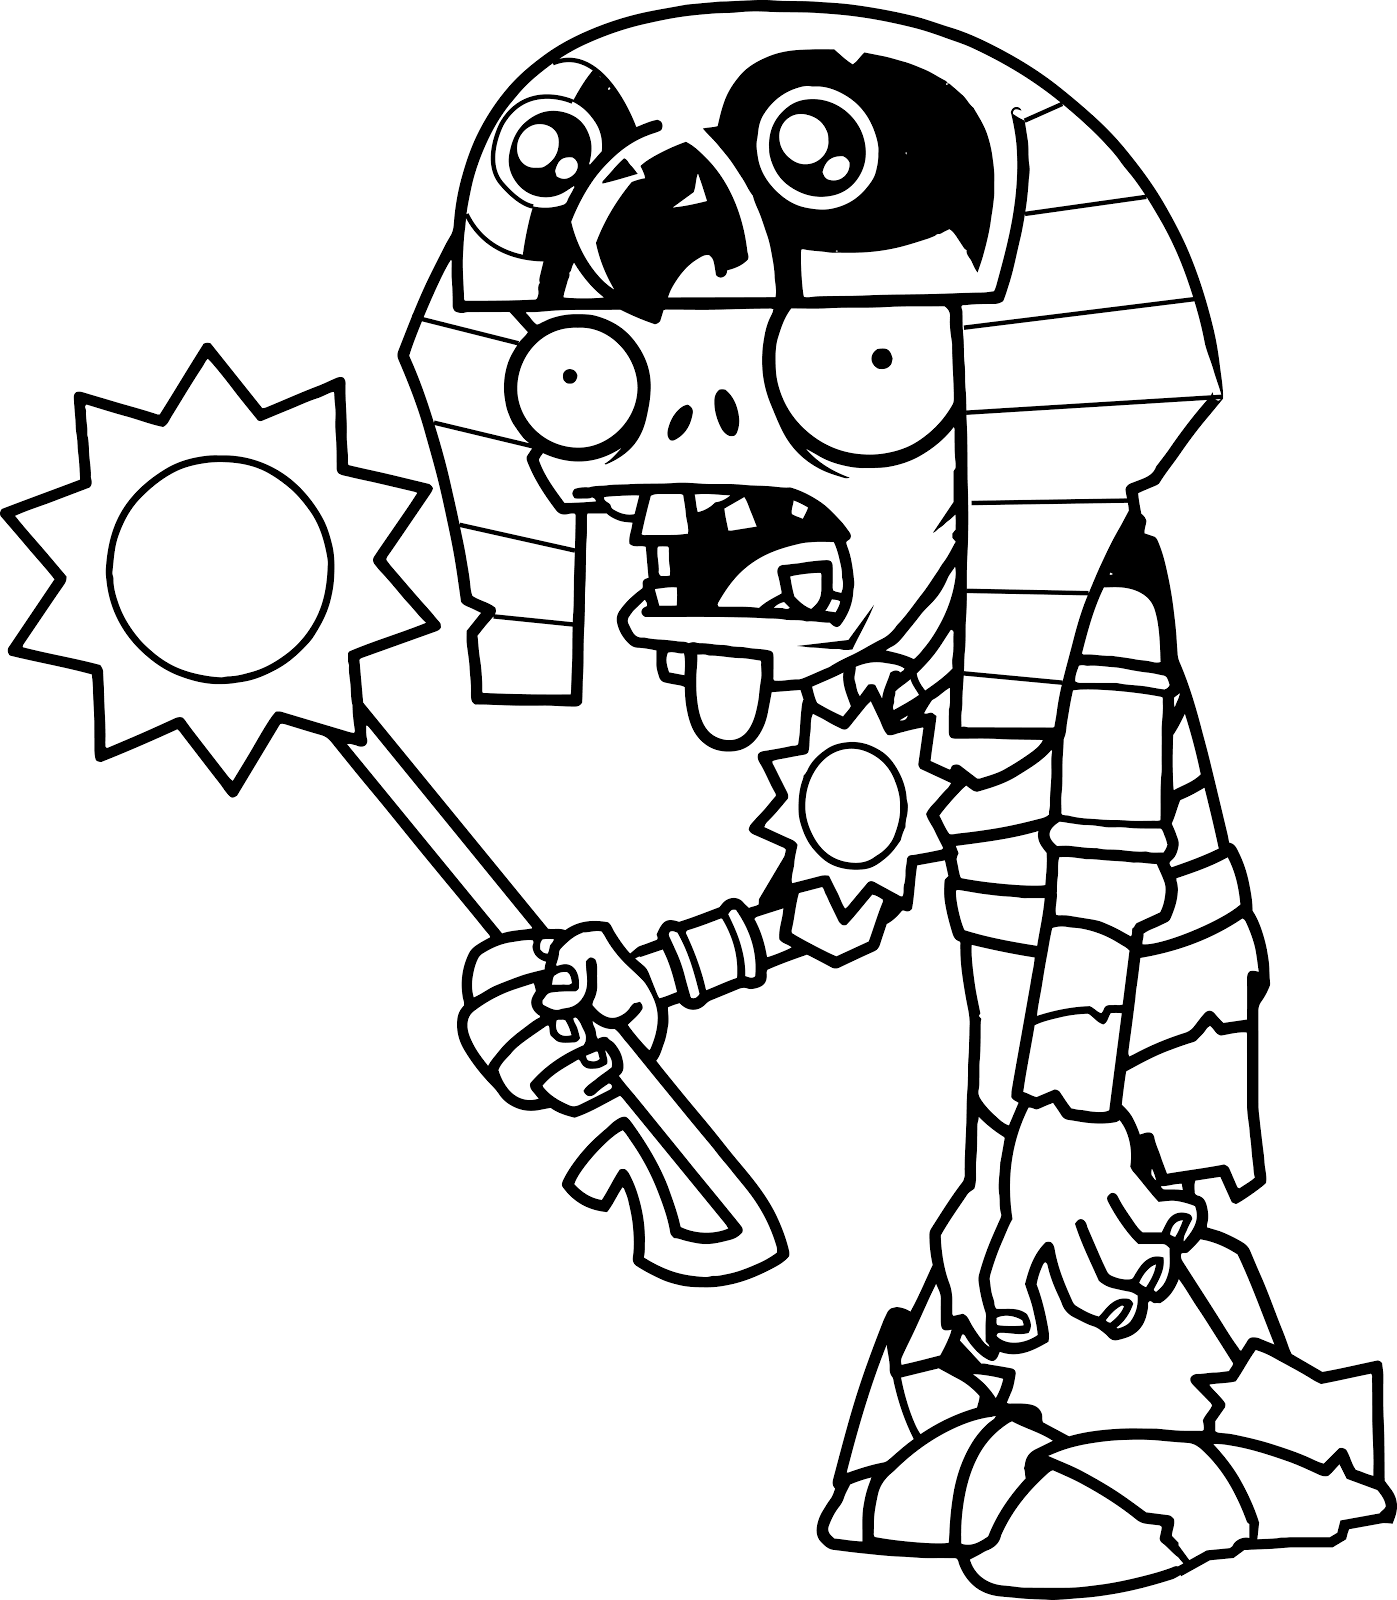 Original Coloring Pages Plants Vs Zombies 2 Egyptian